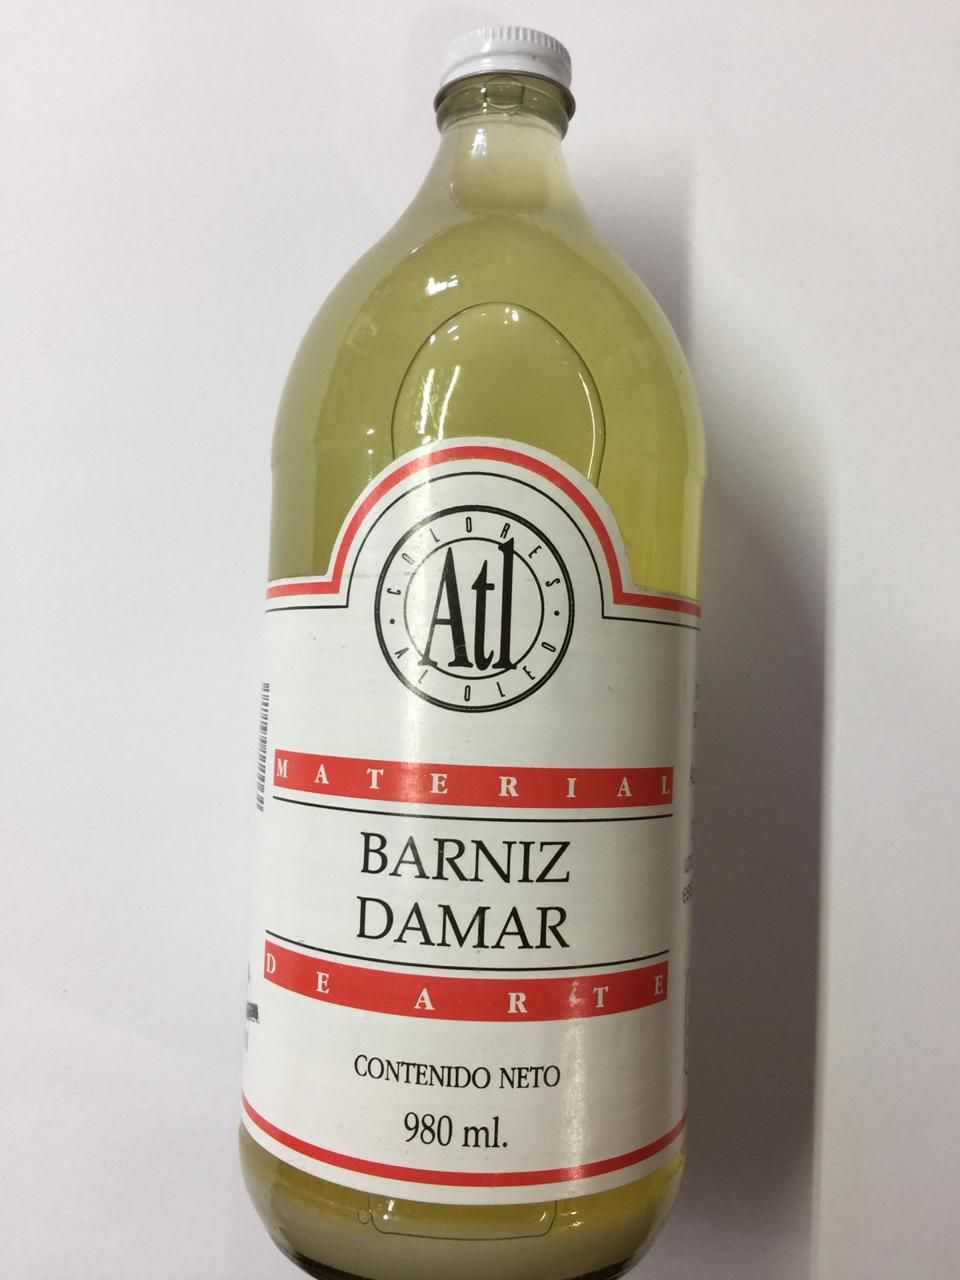 BARNIZ DAMAR 980 ML